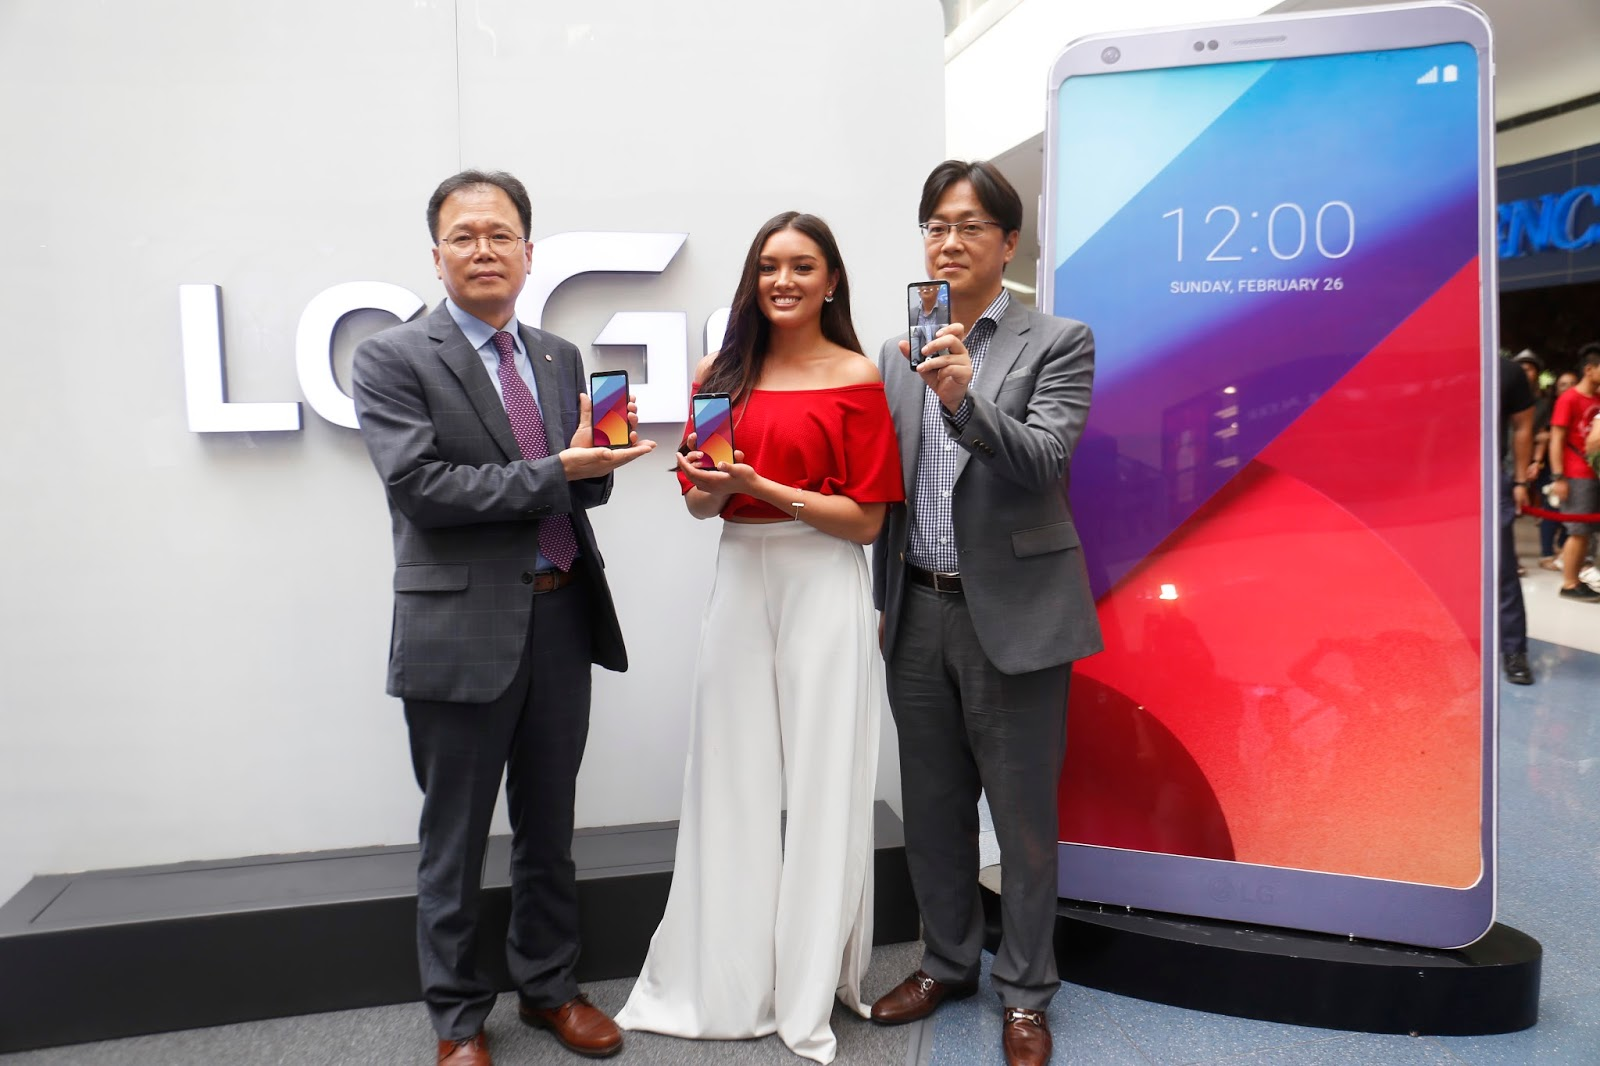 Lauren Reid joins the LG Mobile Philippines family